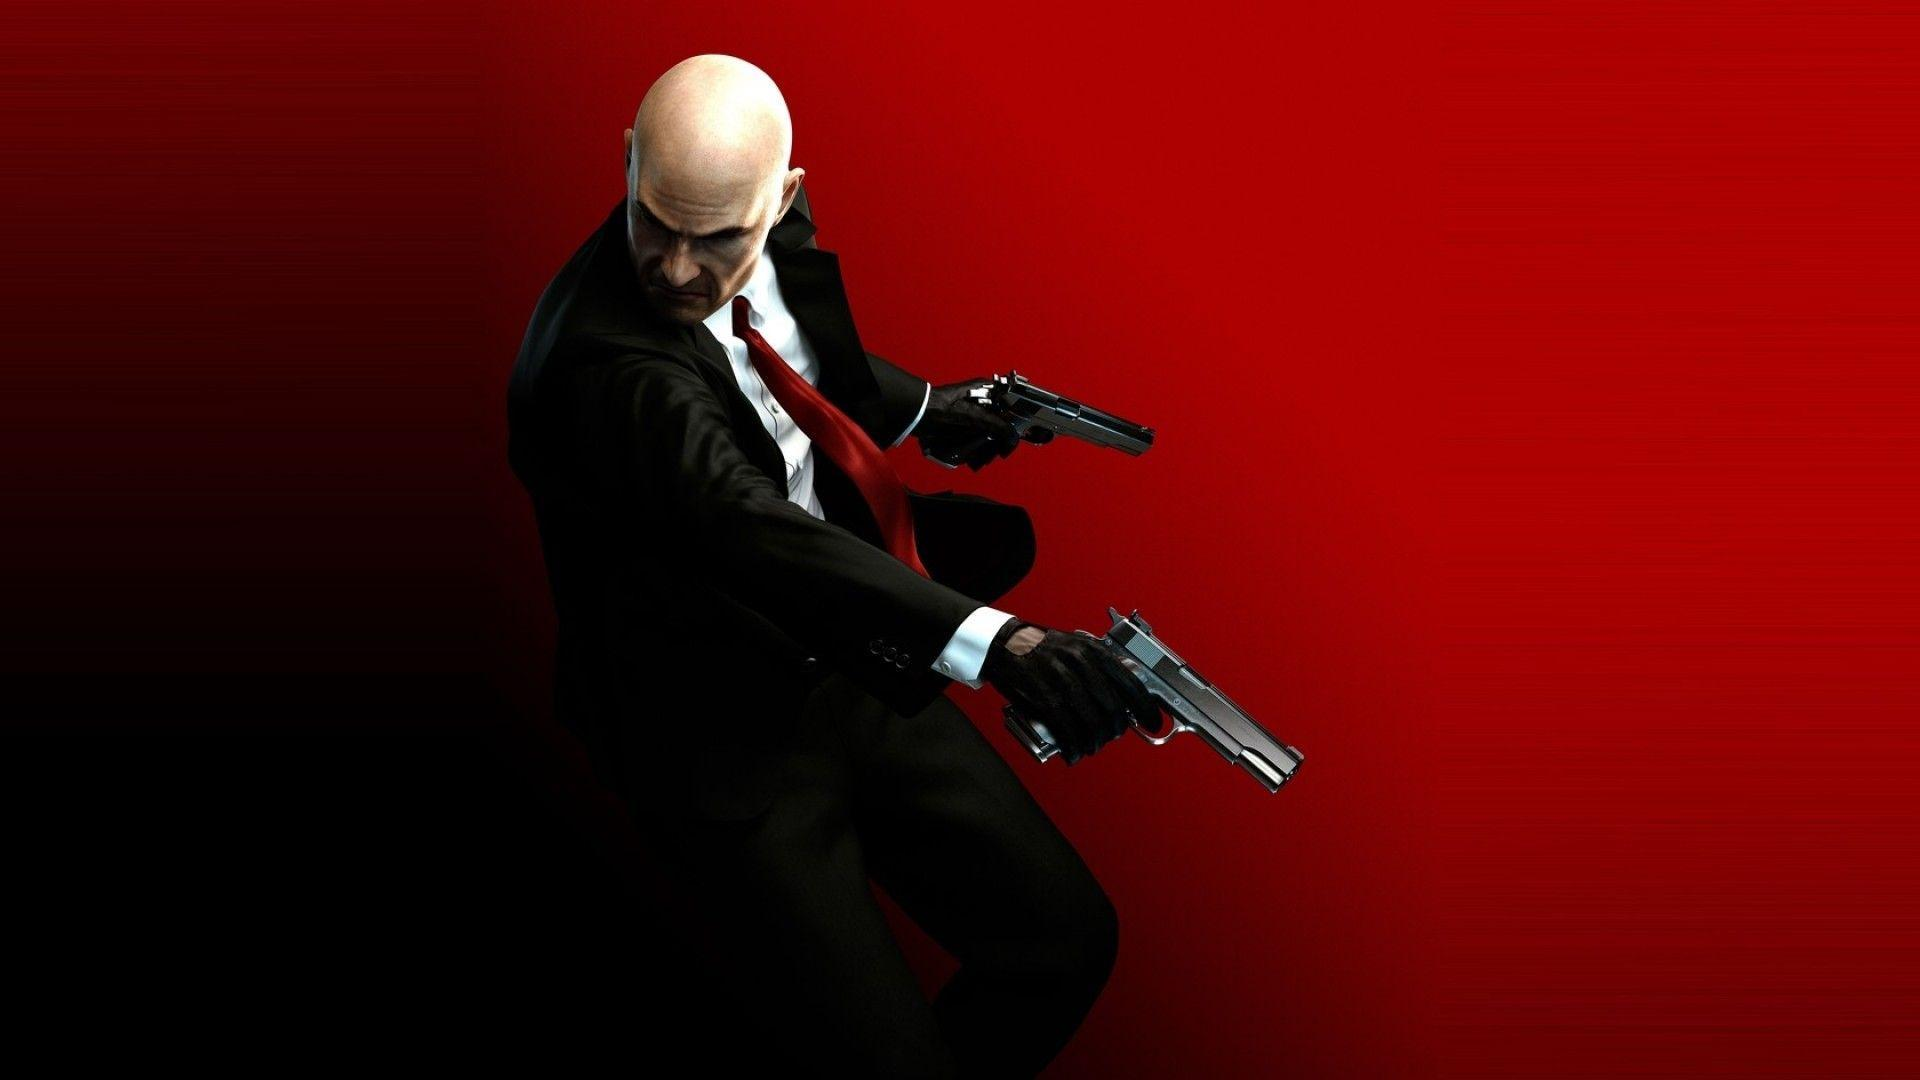 agent 47 wallpapers - wallpaper cave